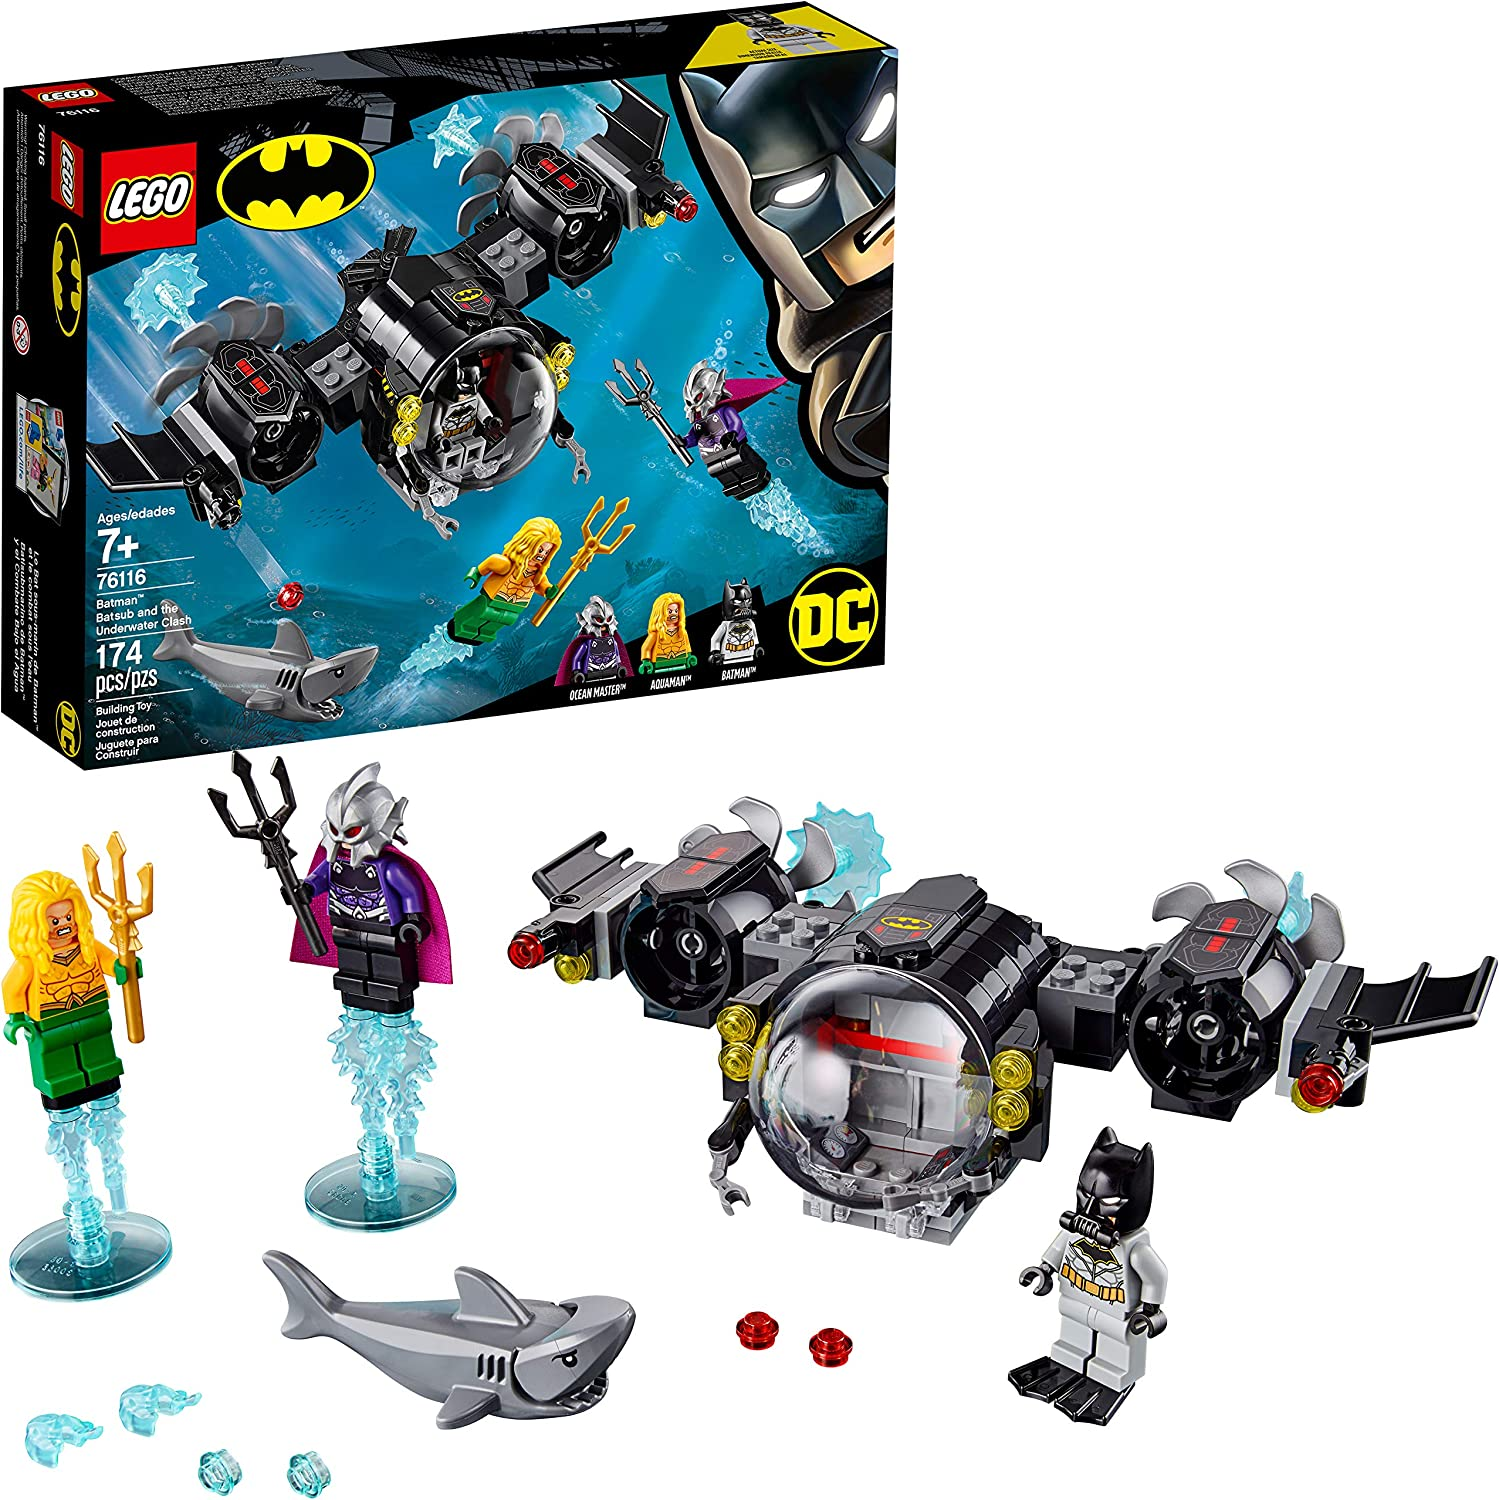 LEGO DC Batman: Batman Batsub and the Underwater Clash 76116 Building Kit (174 Pieces)